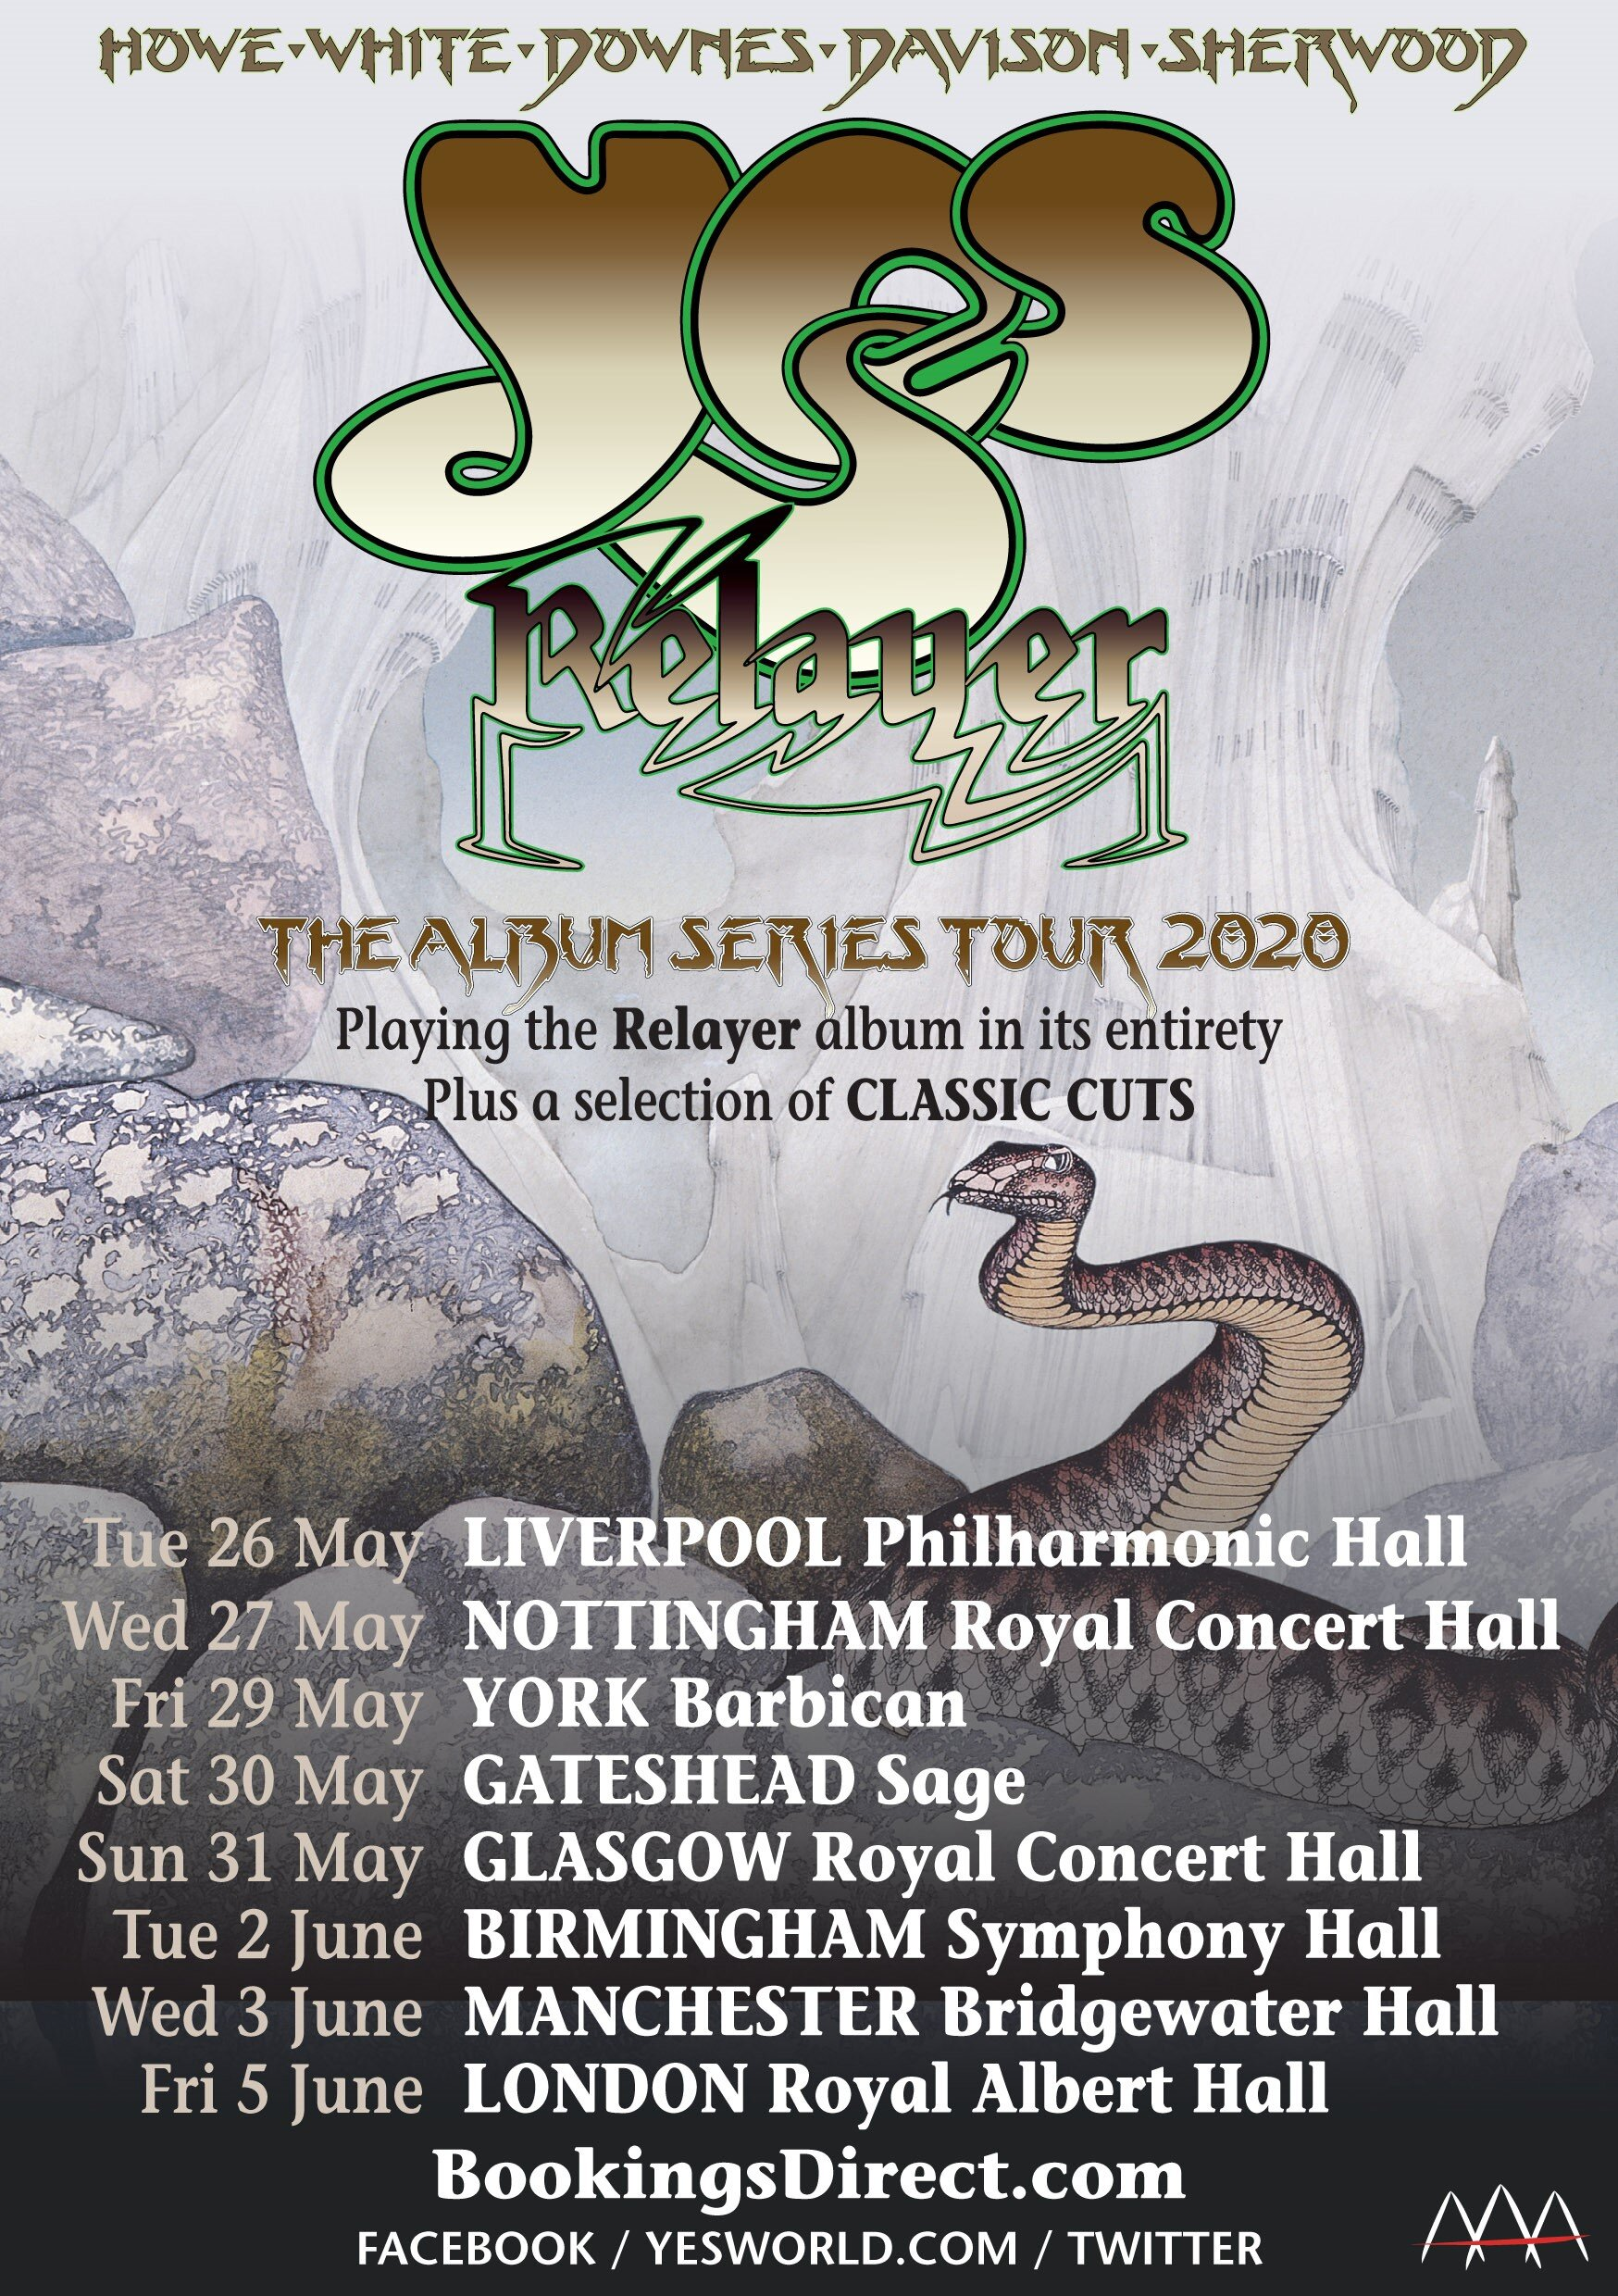 YES 2020 Tour artwork 8 shows copy 2.jpg